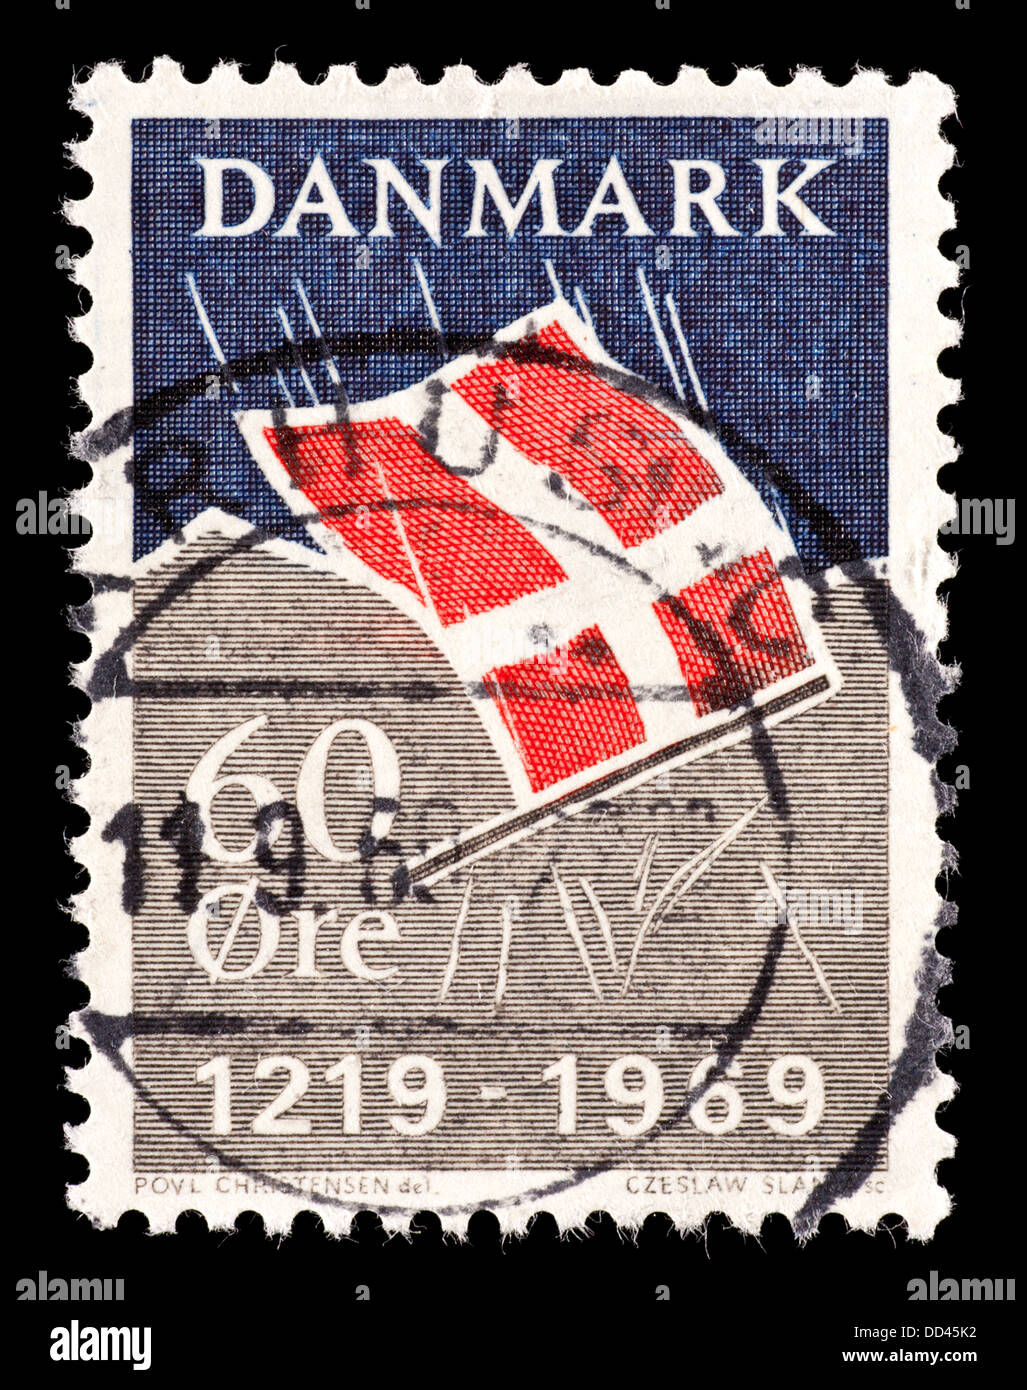 Postage stamp from Denmark depicting the Danish flag (750'th anniversary of the fall of the Dannebrog from heaven. - Stock Image